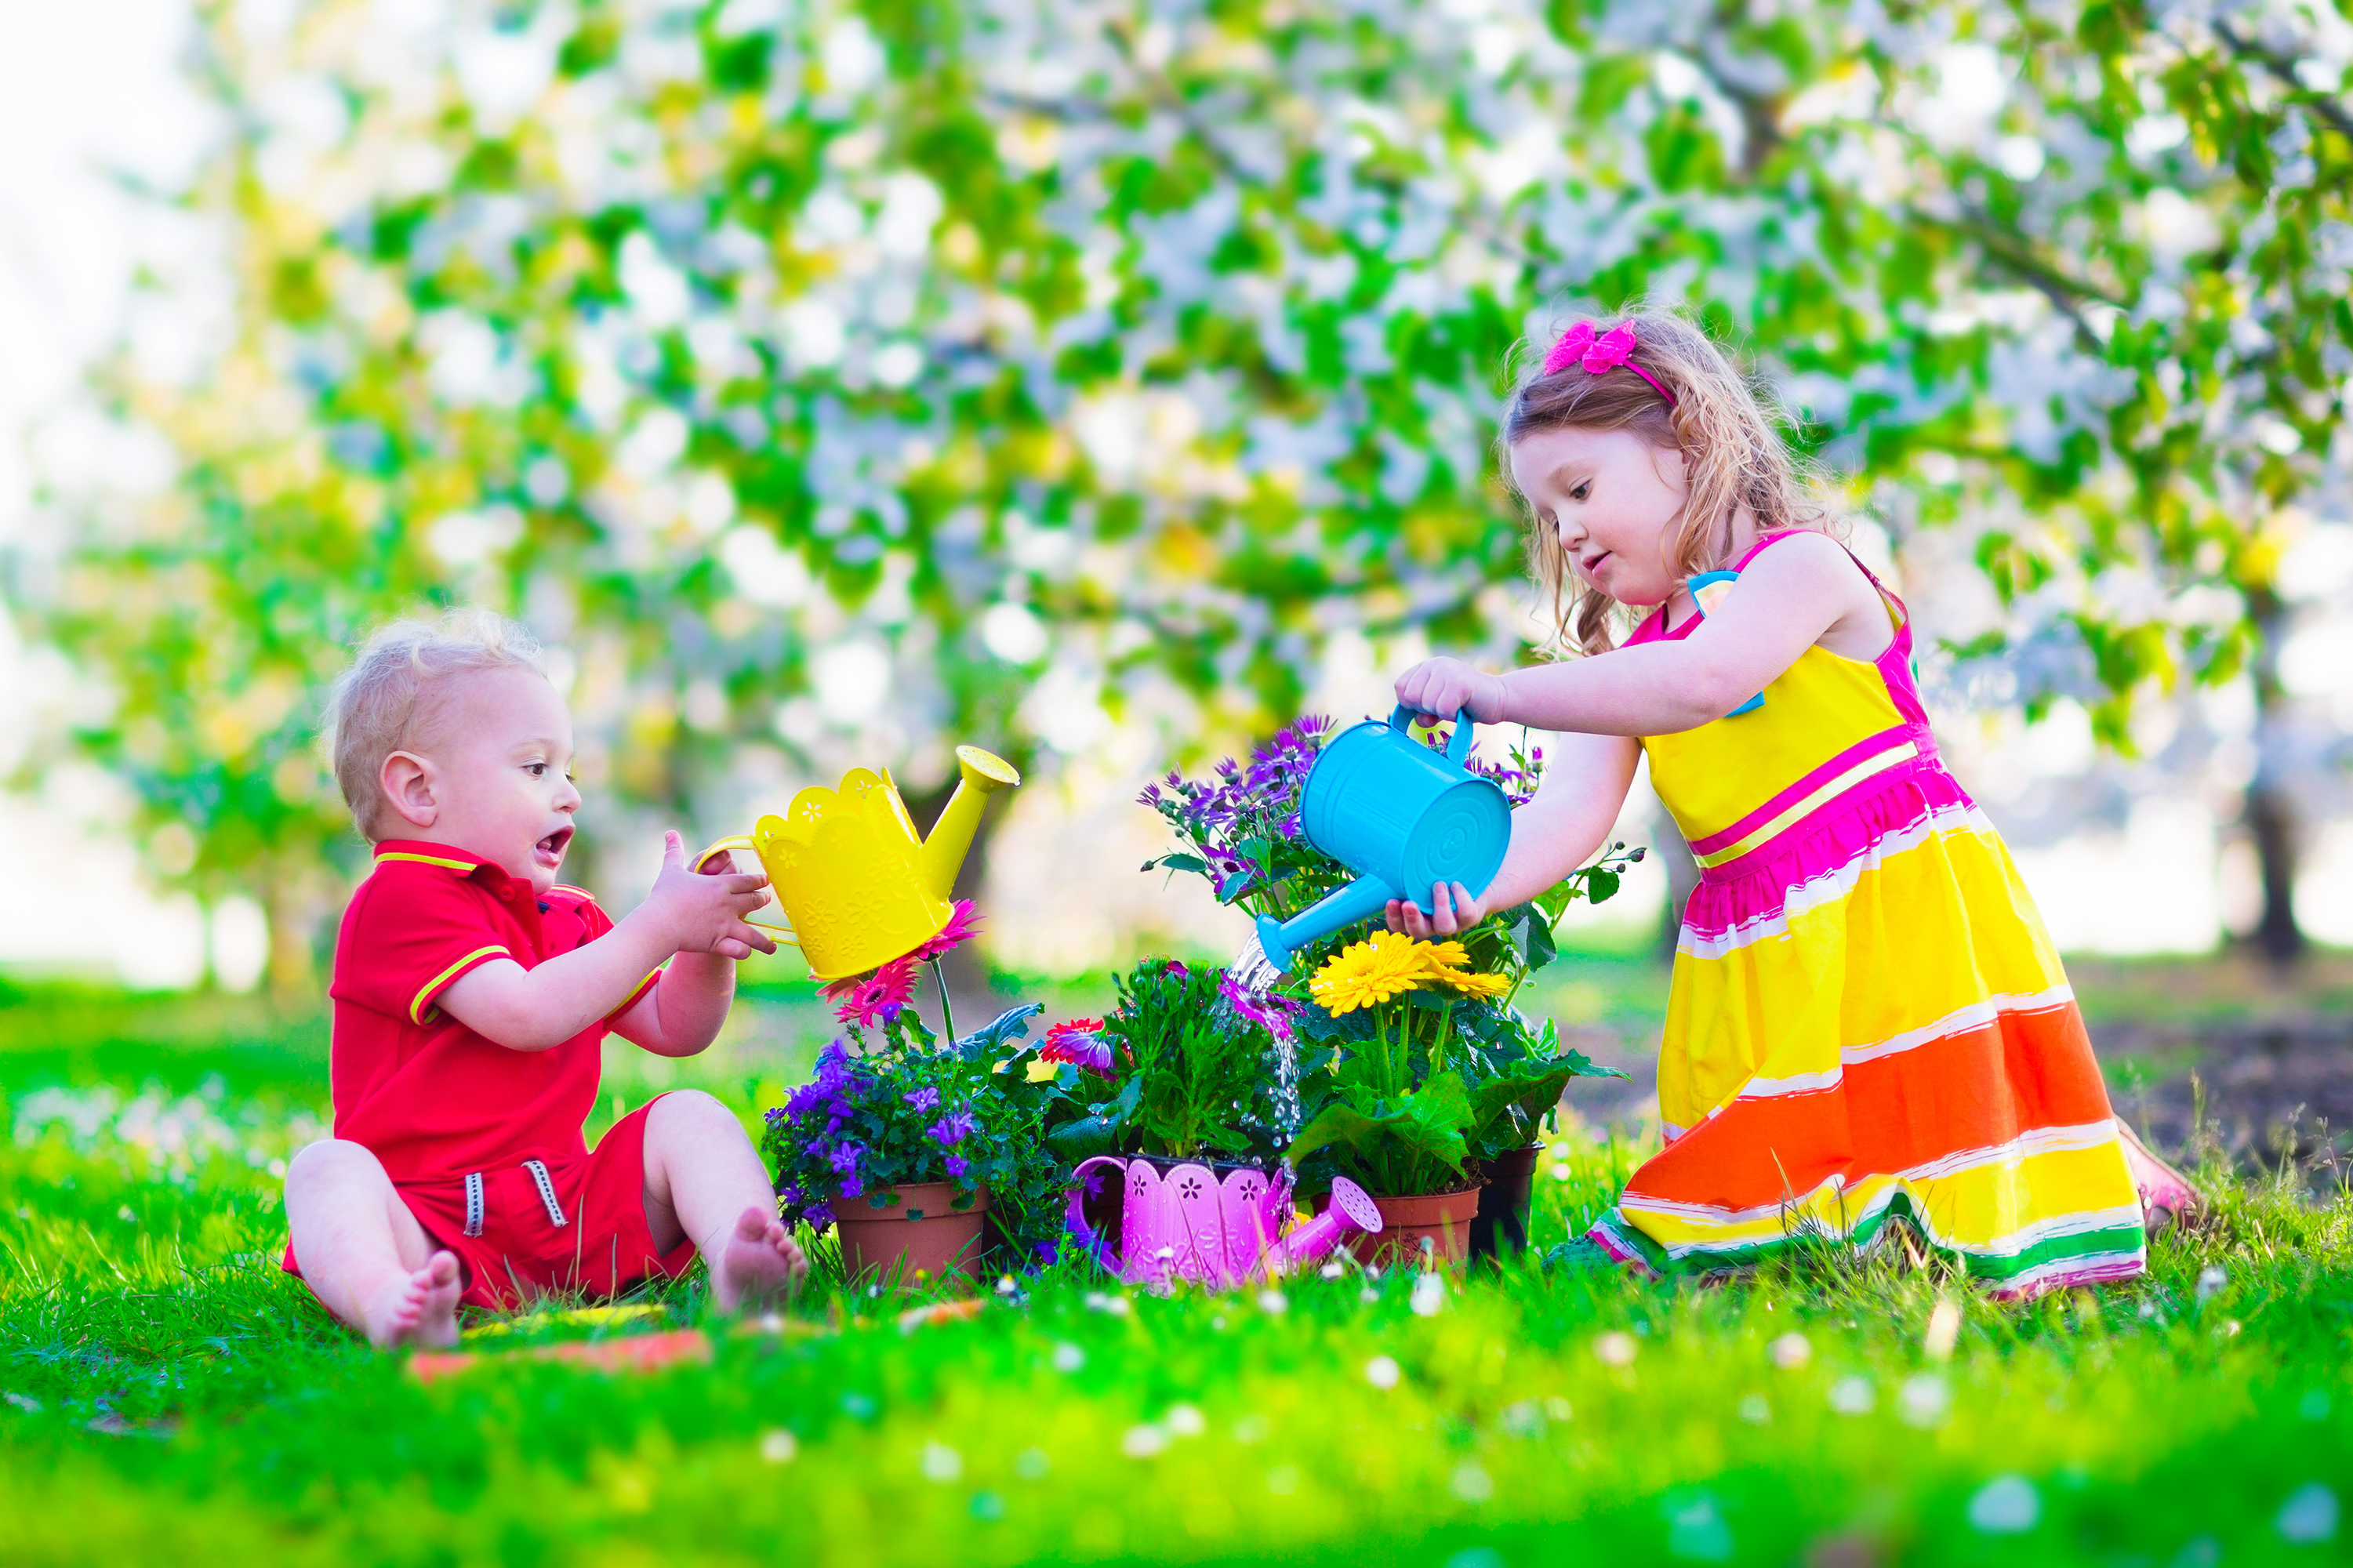 Kids gardening. Children playing outdoors. Little girl and baby boy, brother and sister, working in the garden, planting flowers, watering flower bed. Family in blooming fruit tree orchard. Summer vacation on a farm.